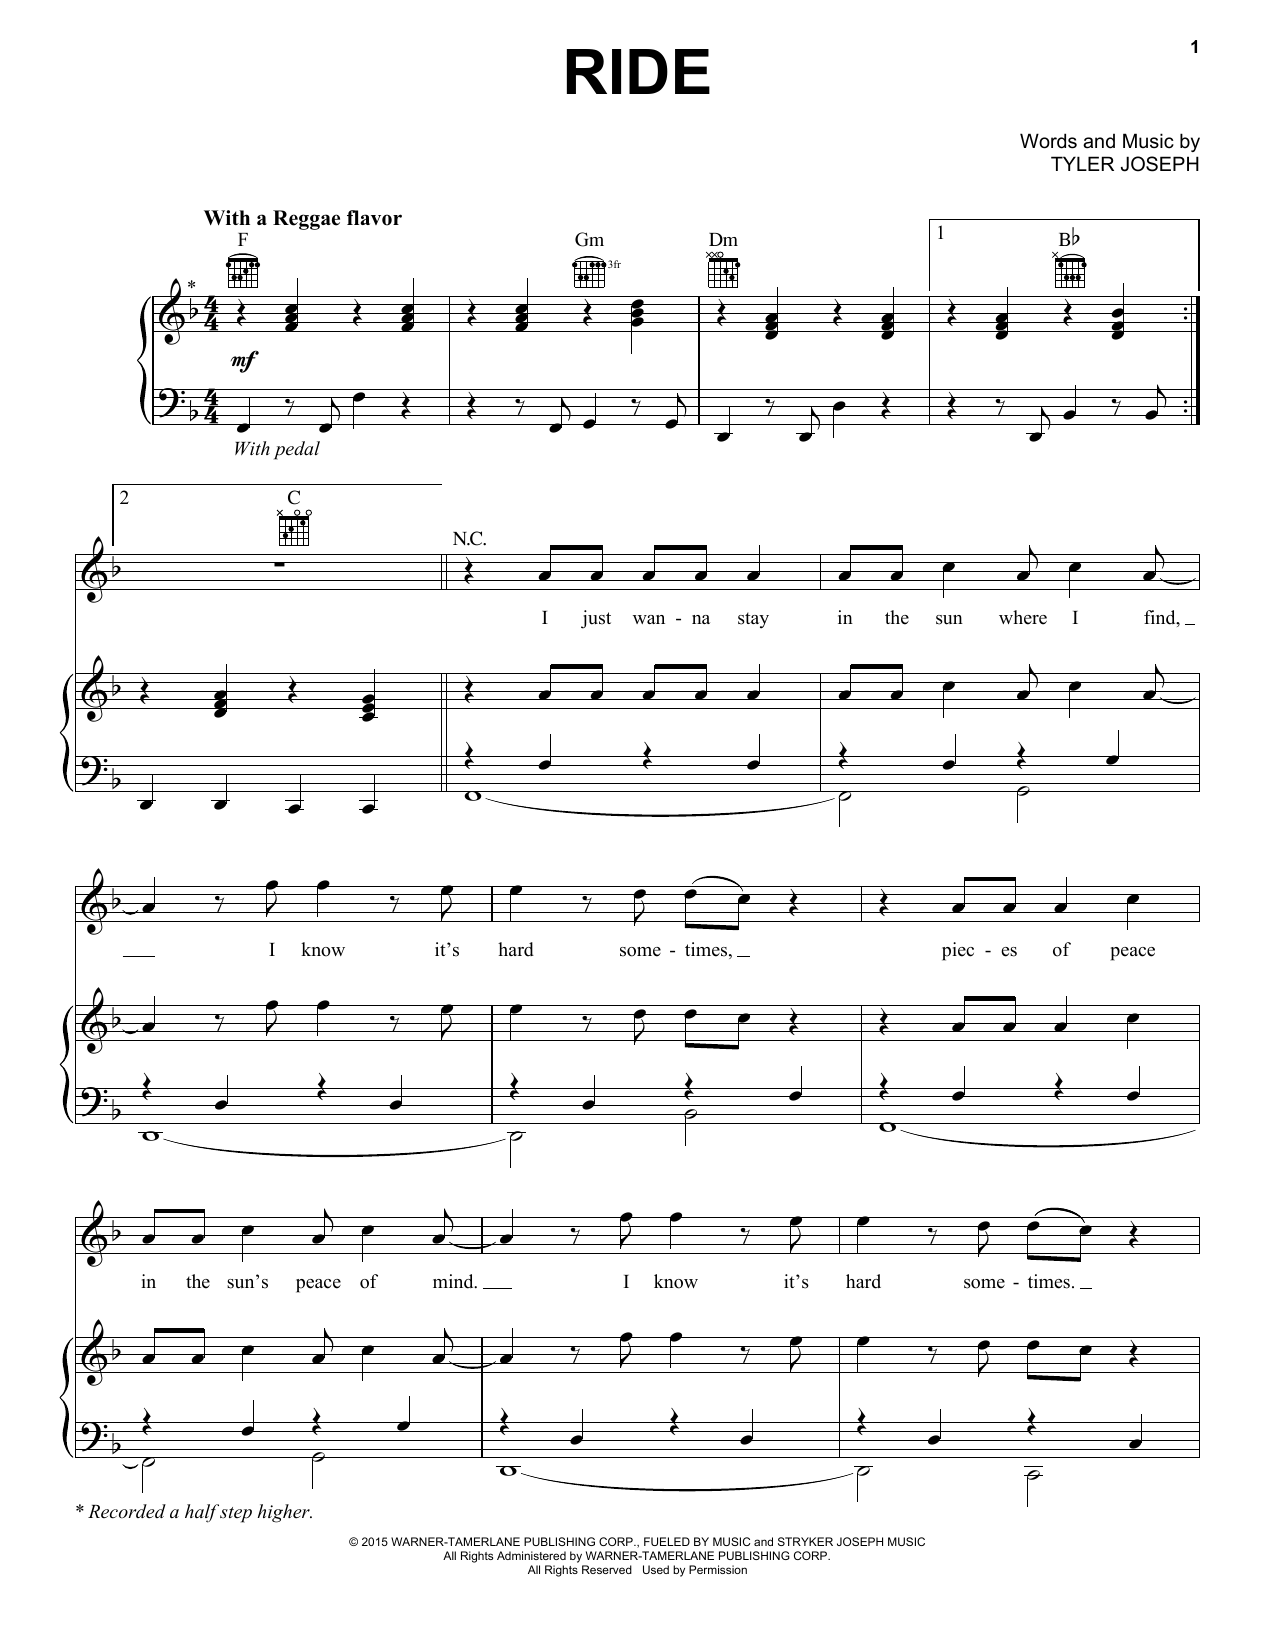 twenty one pilots Ride sheet music notes and chords